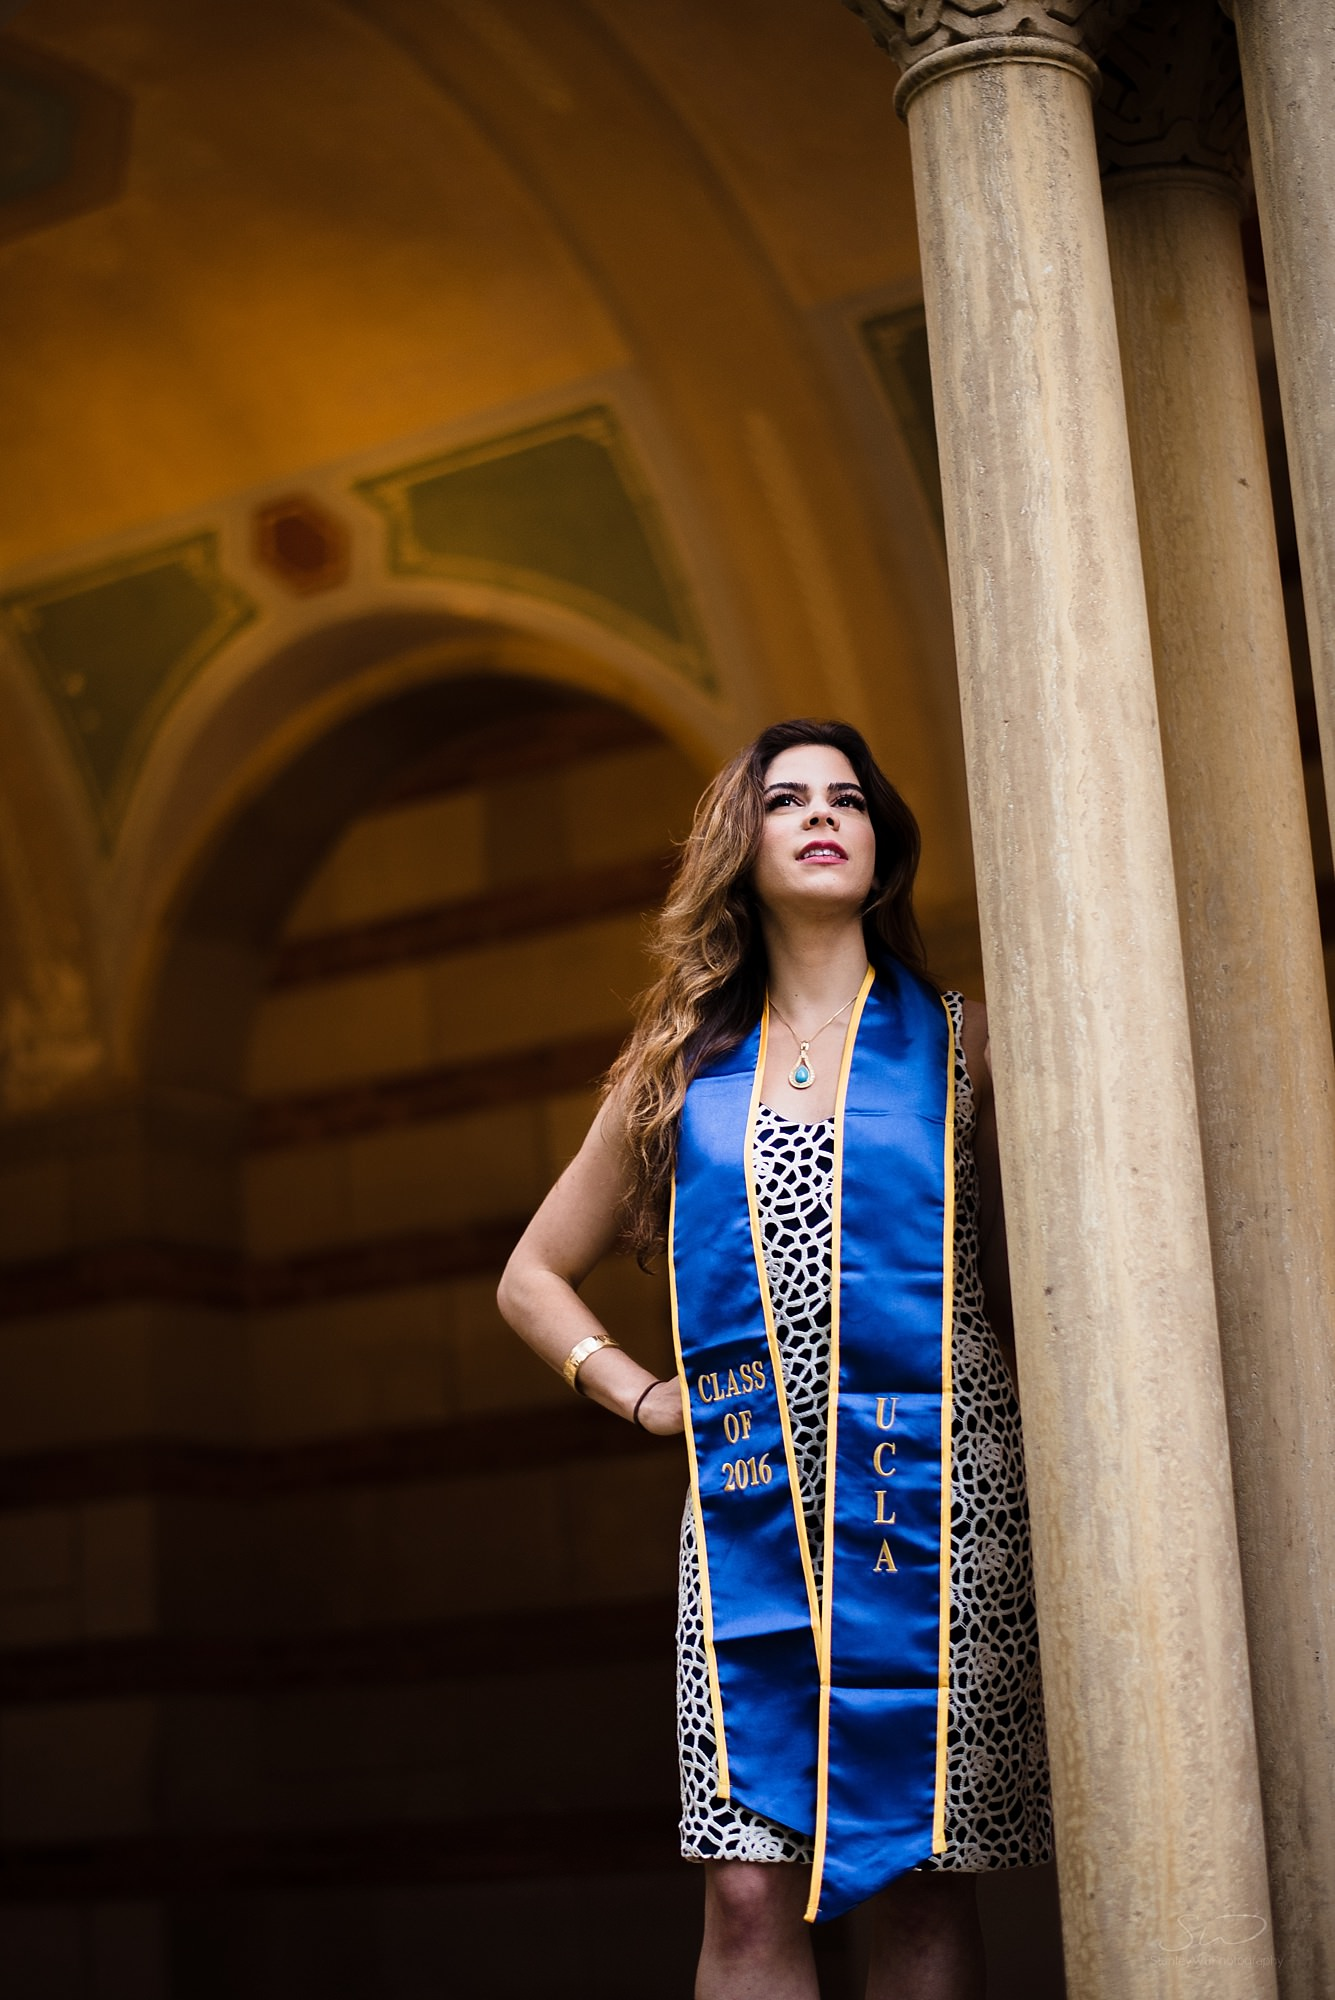 epic graduation senior portrait of a girl standing heroically next to a pillar at ucla in los angeles